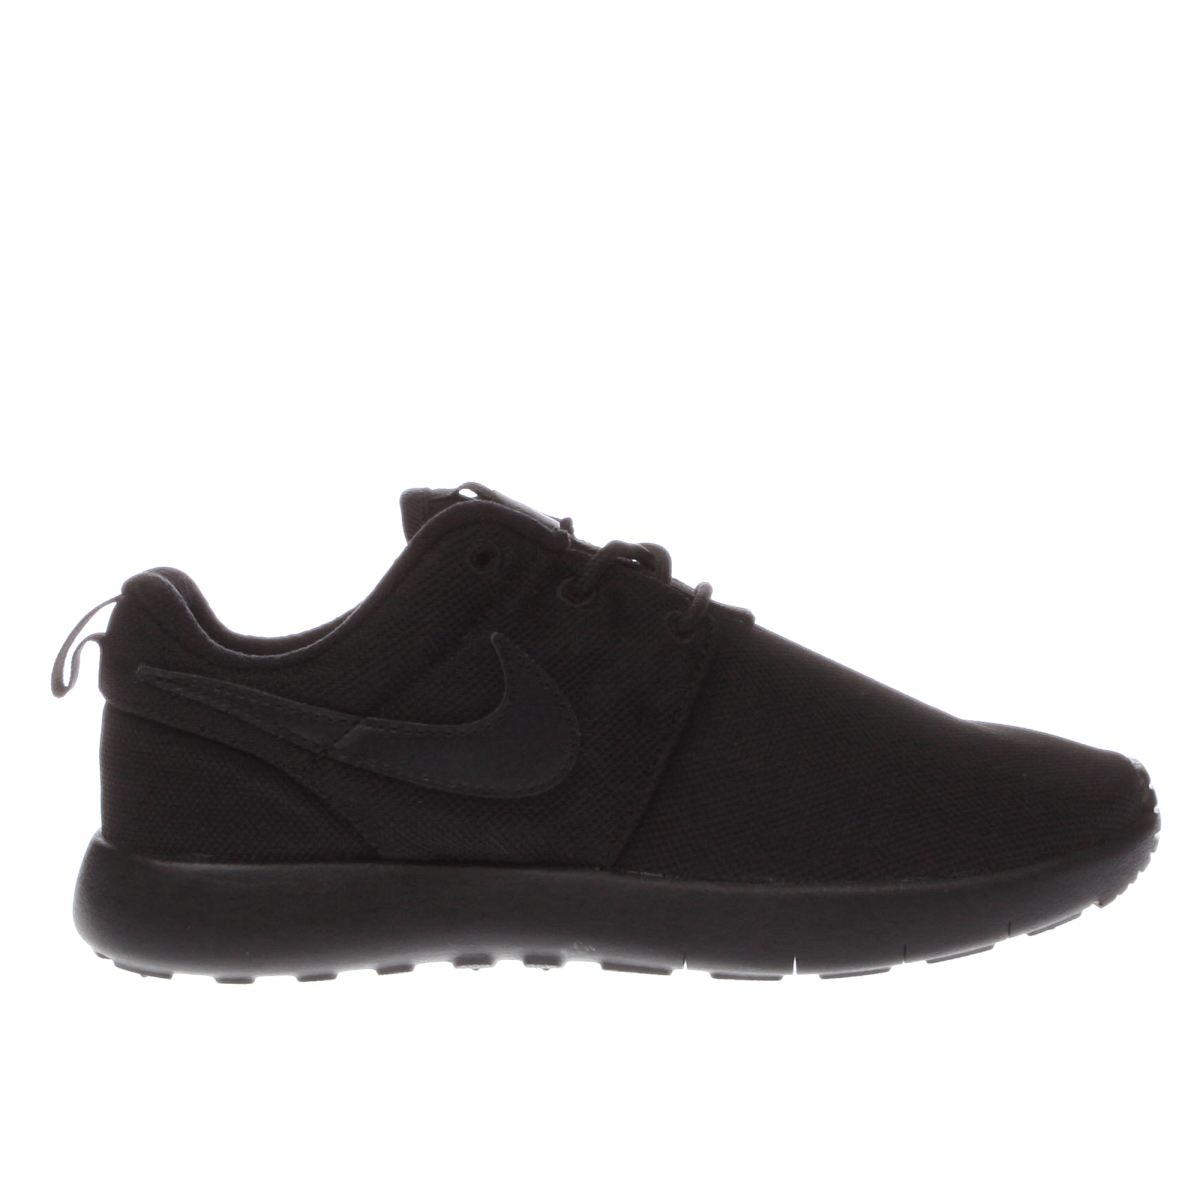 67981a12d25d Cheap Authentic Nike Roshe Run Online free shipping